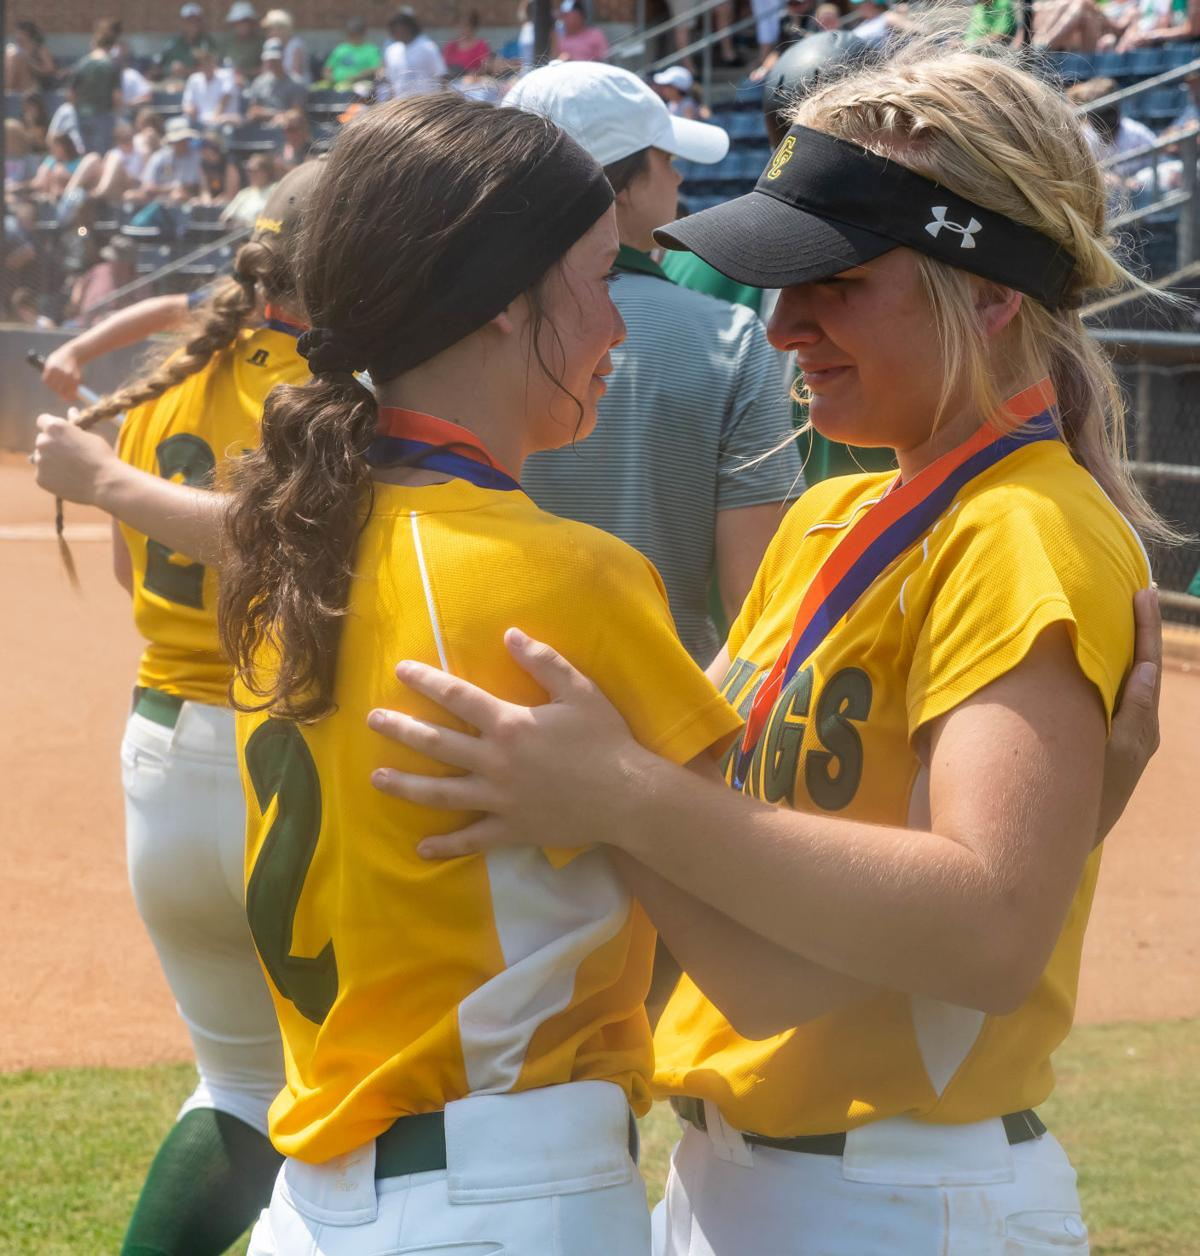 North Carolina High School 3A Softball State Playoffs